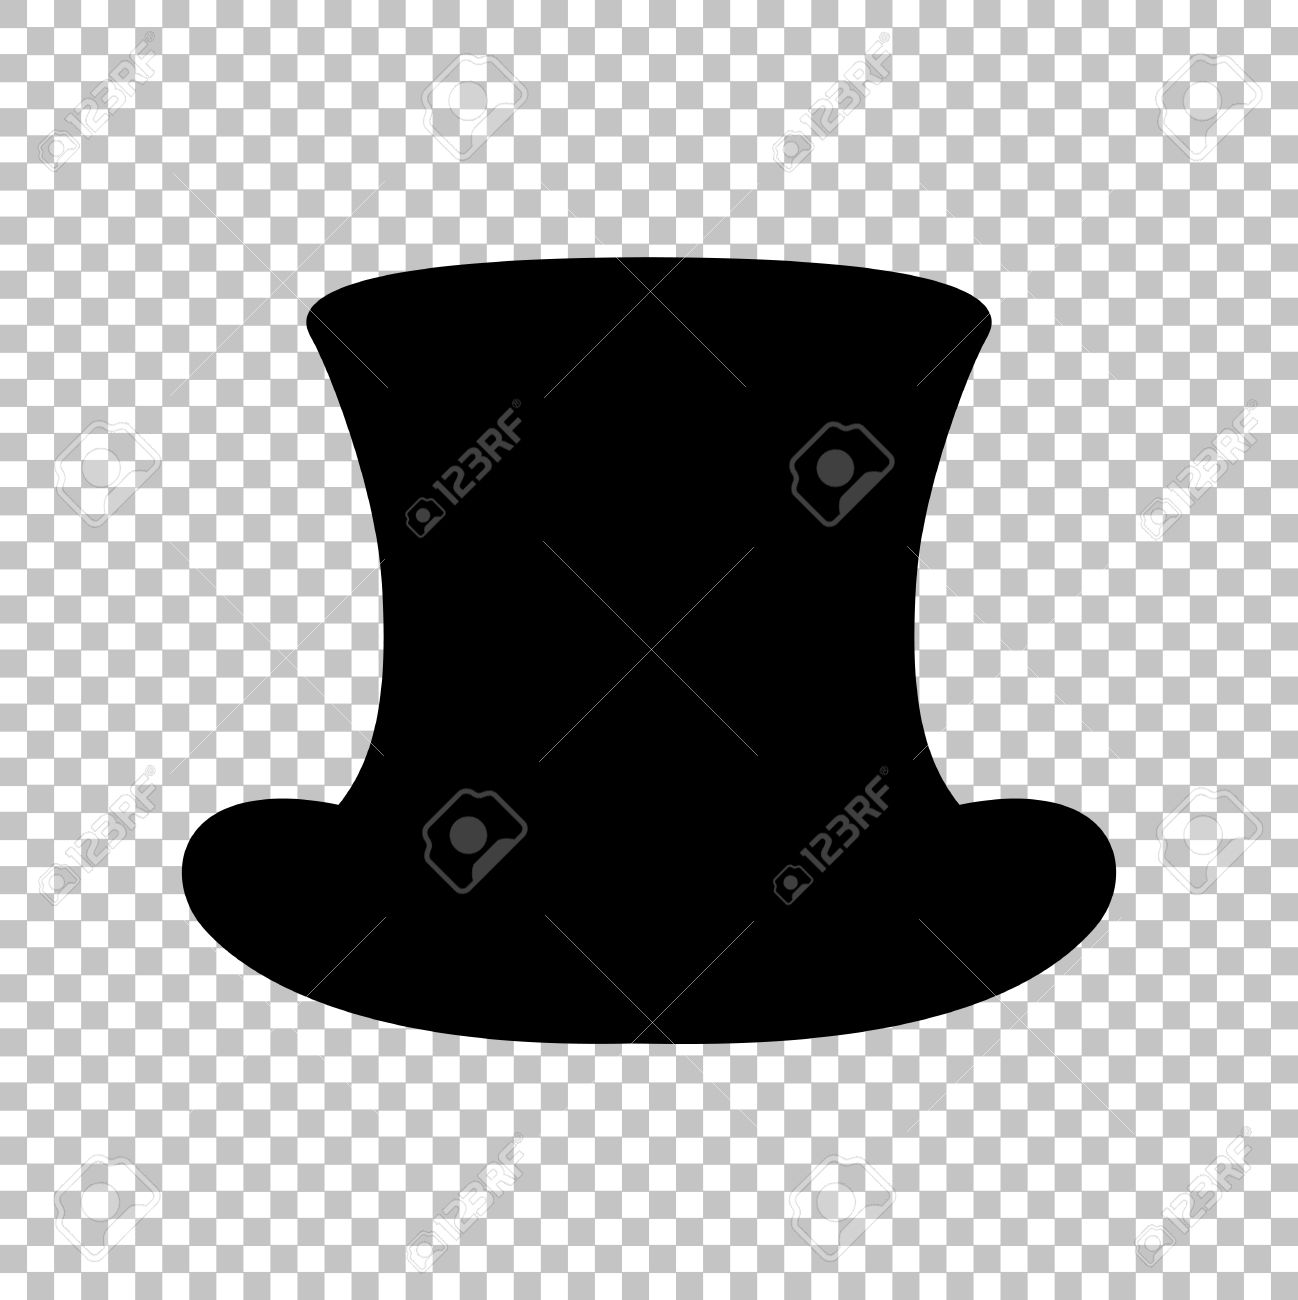 Top hat sign. Flat style icon on transparent background Stock Vector -  52185022 a68847c3582